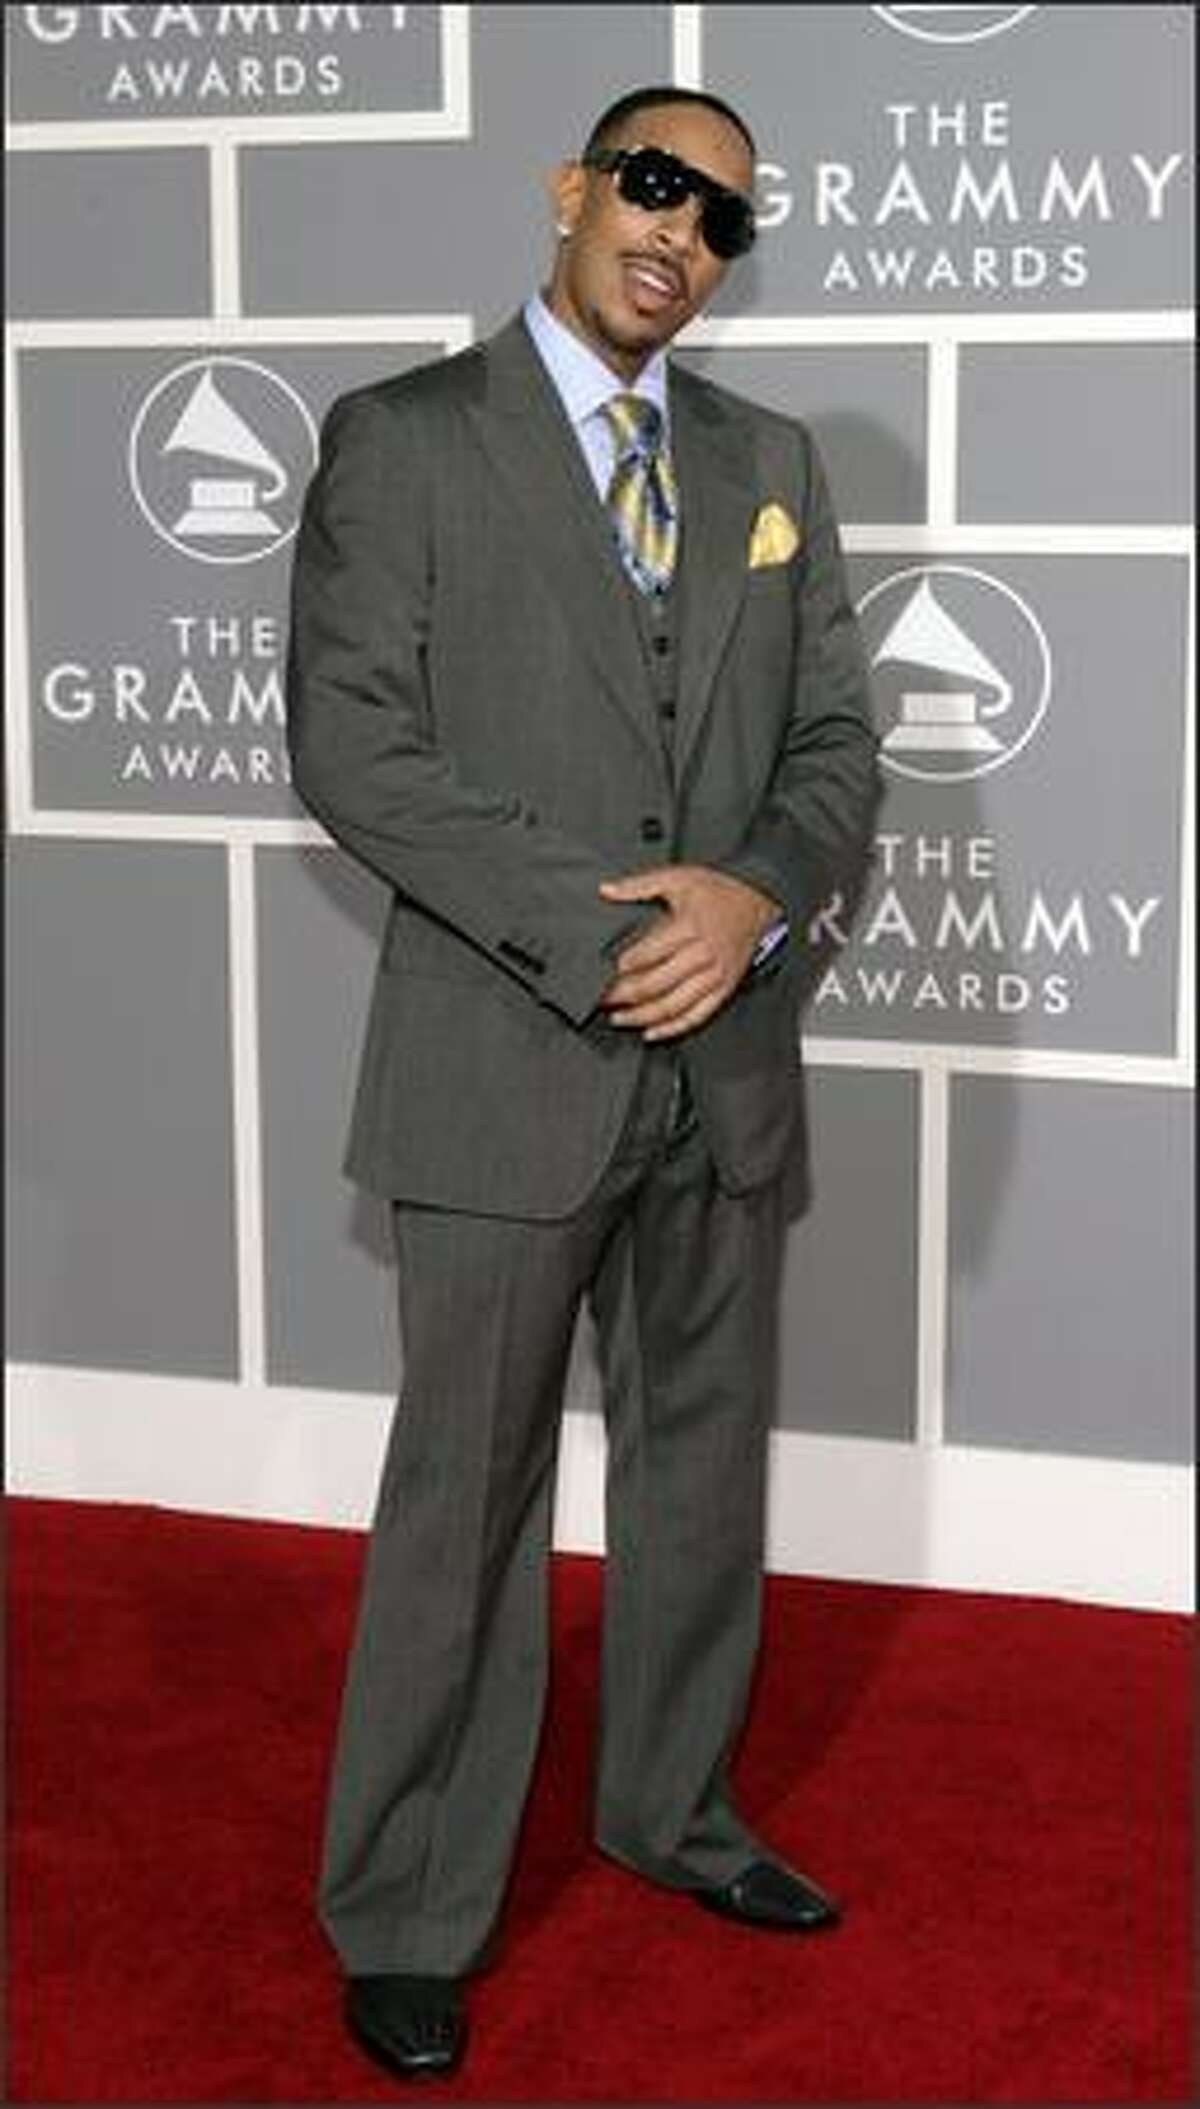 Rapper and actor Ludacris arrives for the 49th Annual Grammy Awards. (AP Photo/Matt Sayles)